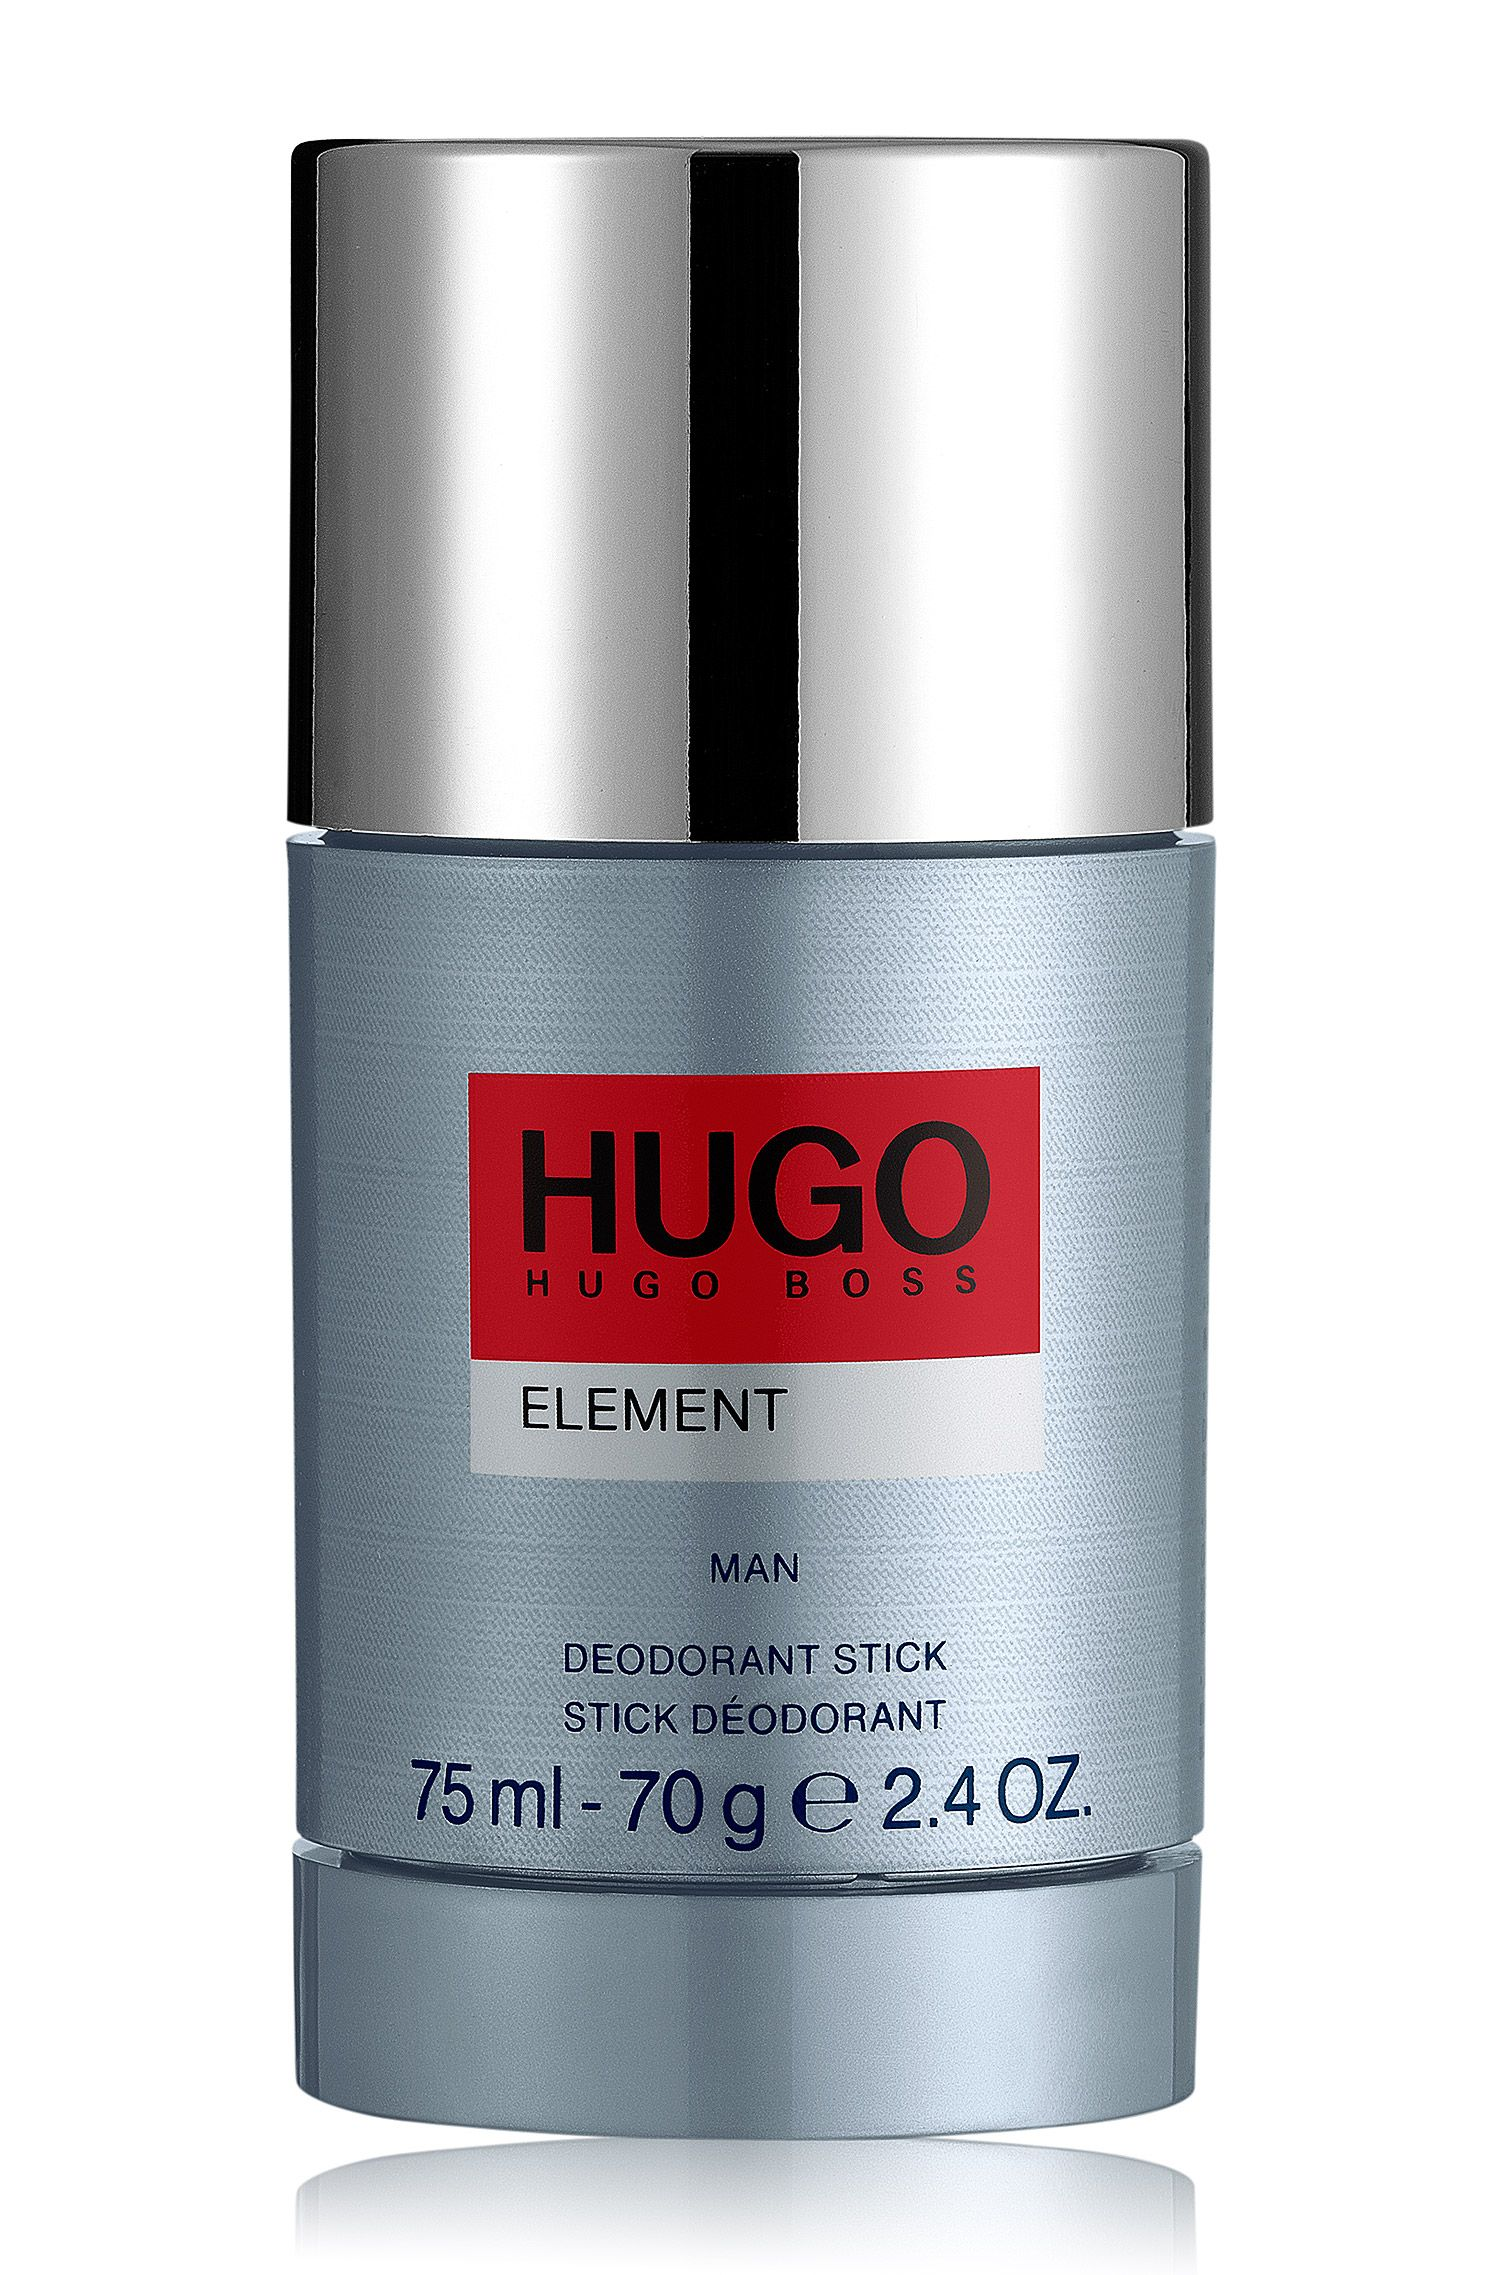 HUGO Element deodorantstick75 ml